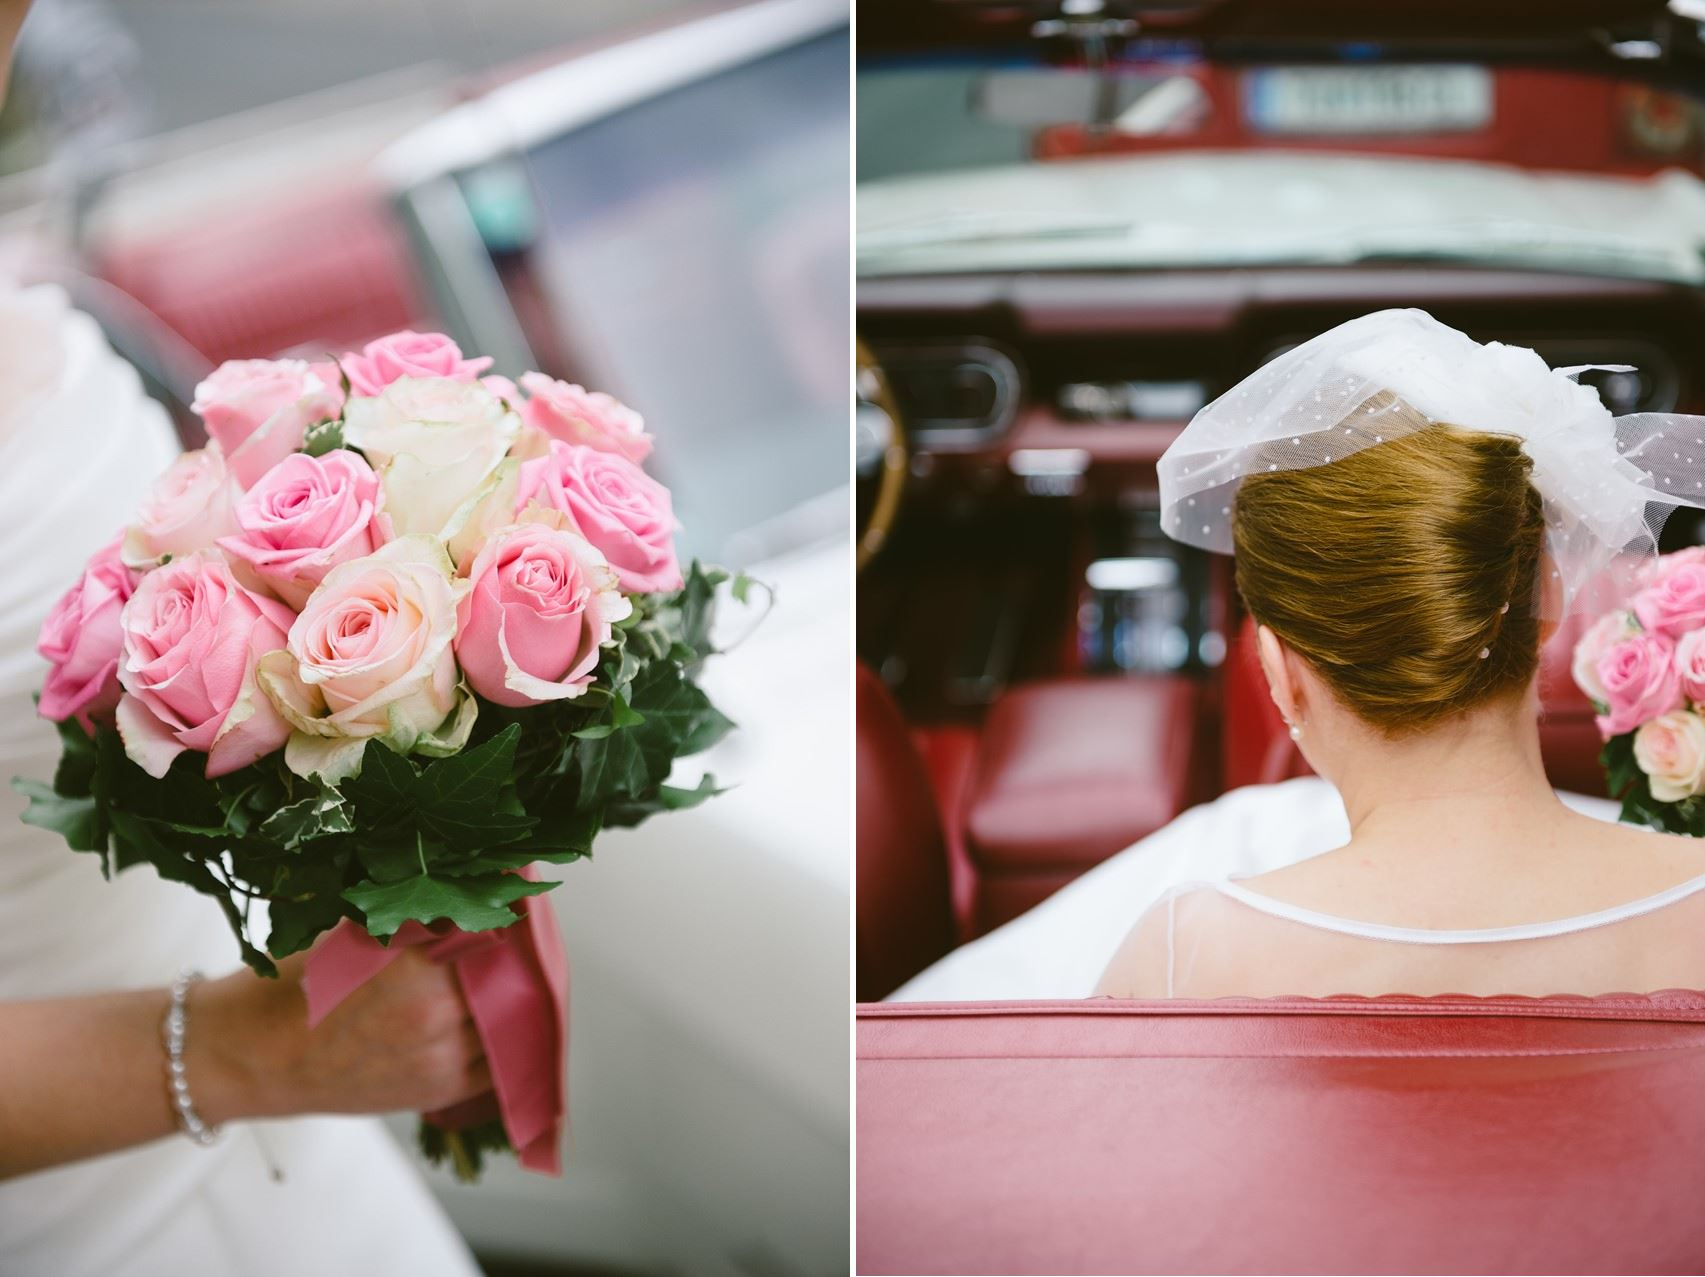 1950s Inspired Bride - A Sweet 1950s Inspired Wedding in Vienna